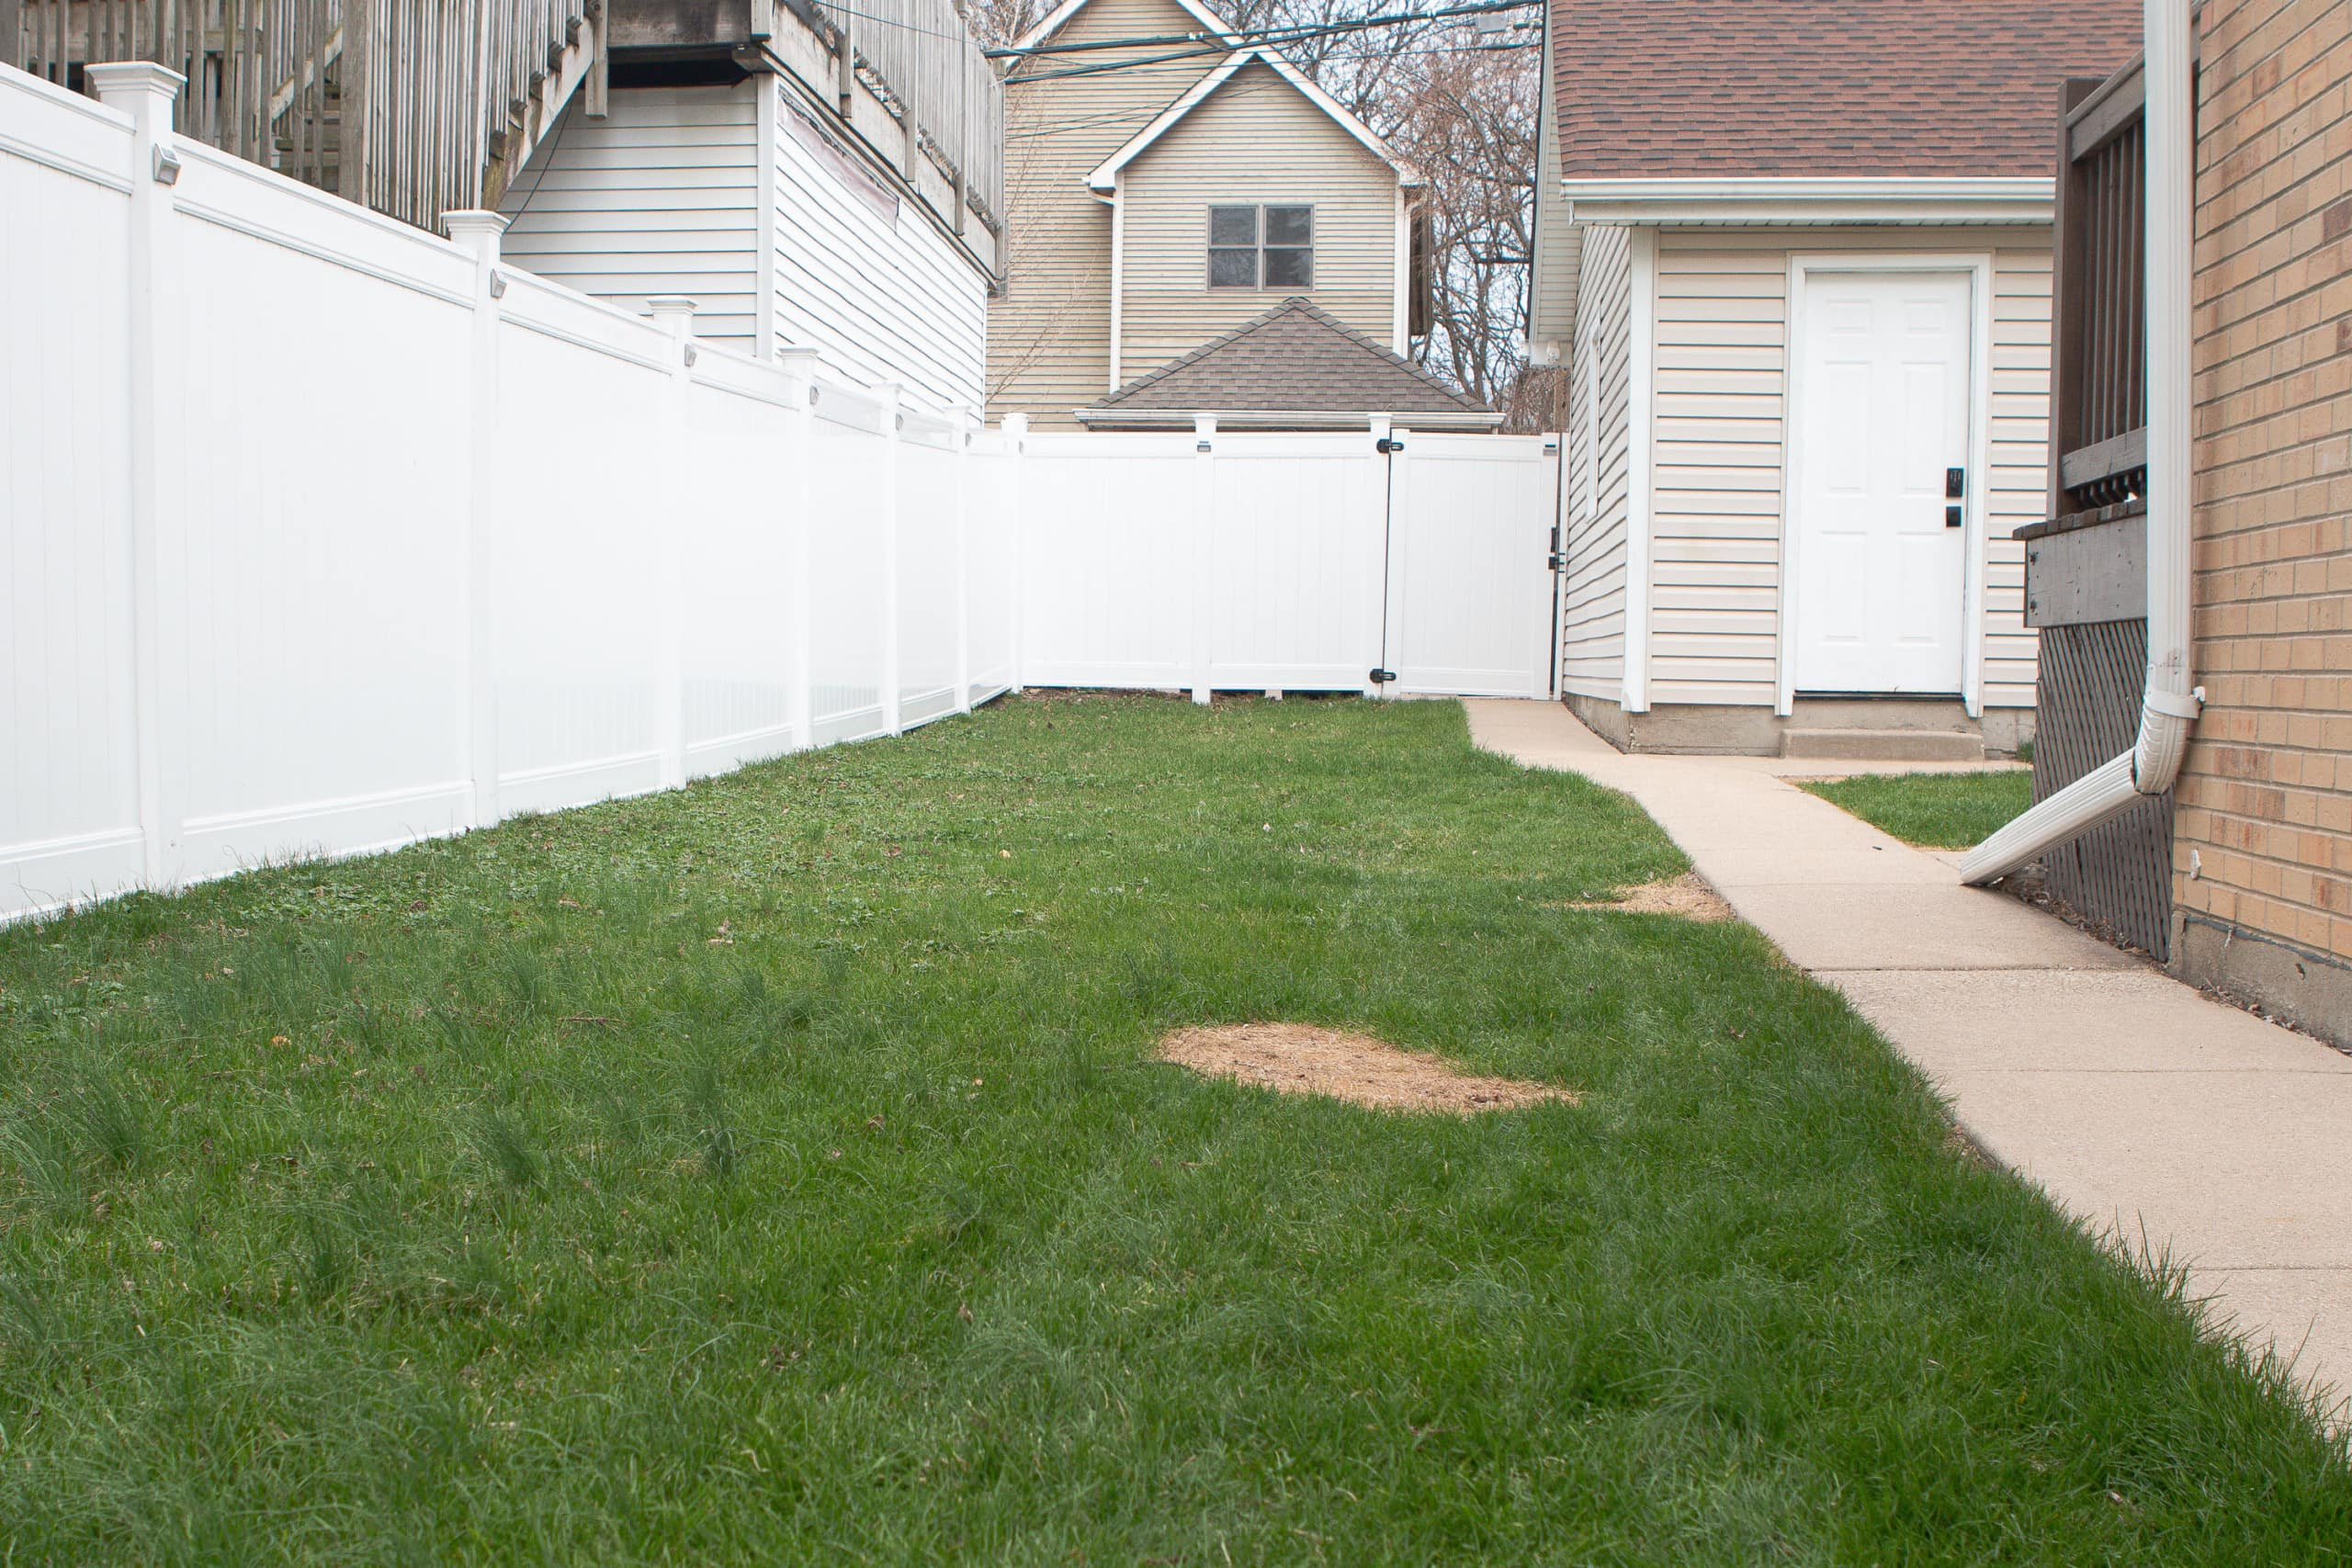 Our lawn before